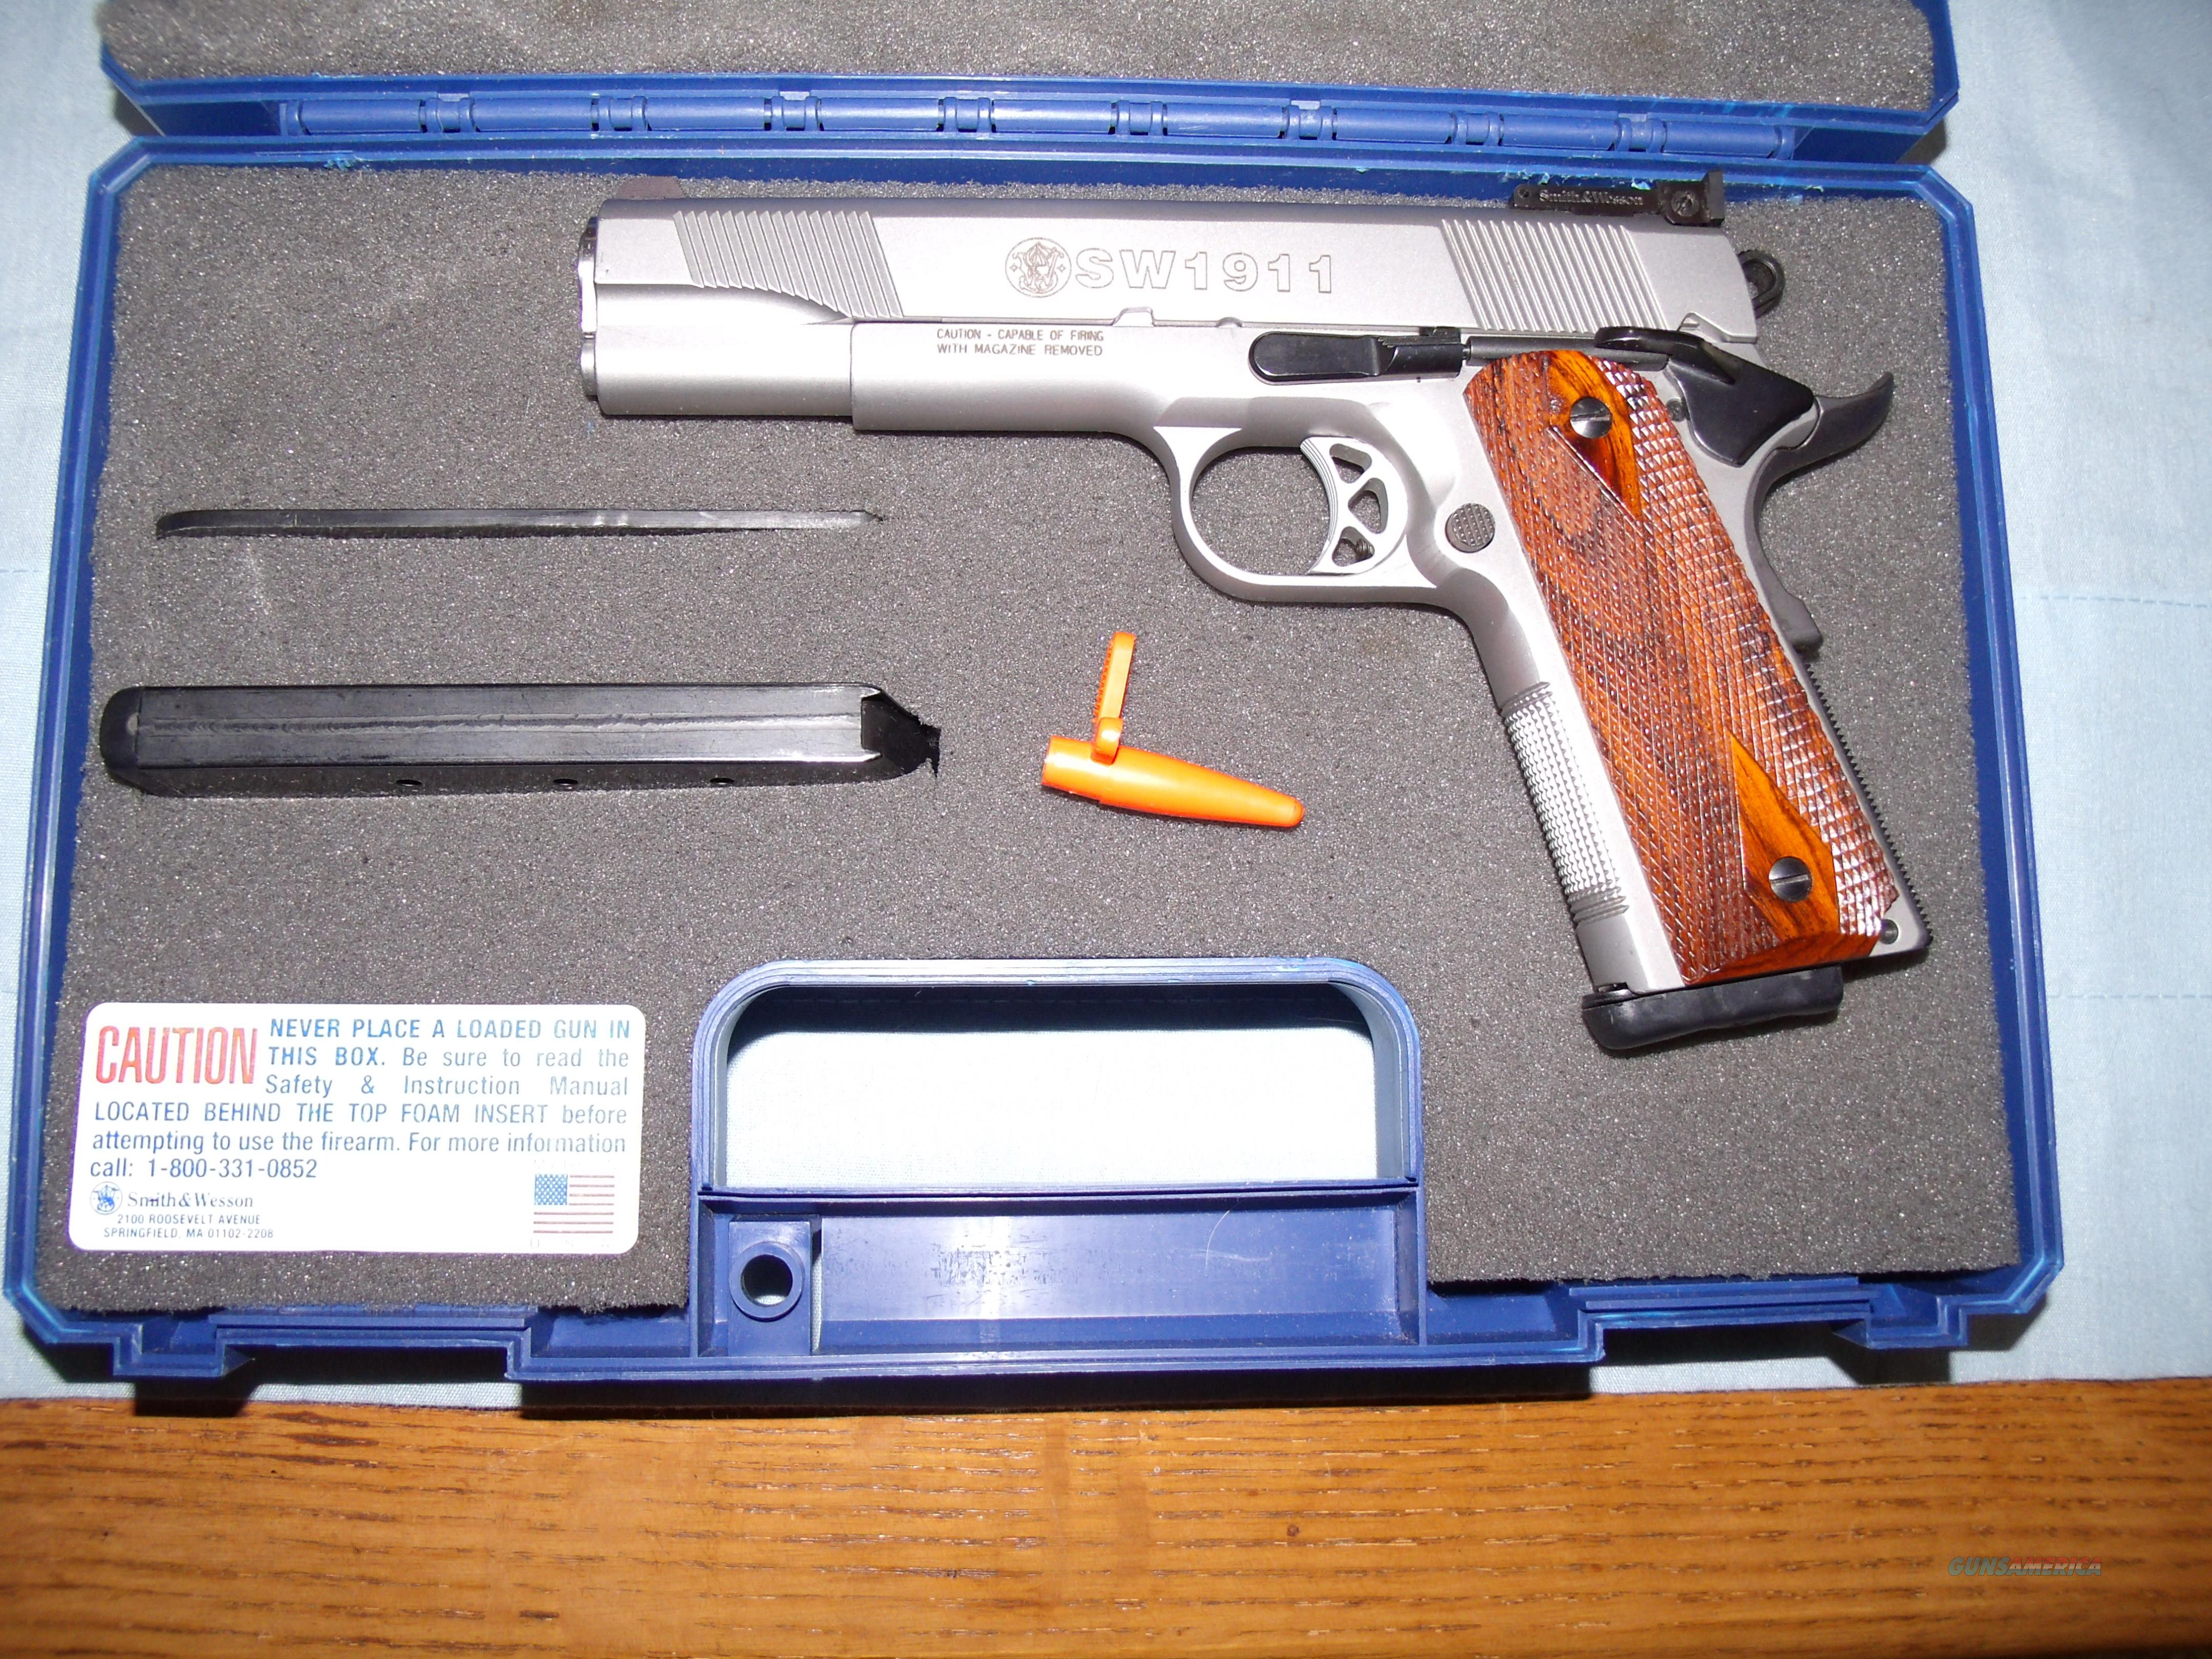 S&W 1911  TARGET , STAINLESS STEEL  Guns > Pistols > Smith & Wesson Pistols - Autos > Steel Frame